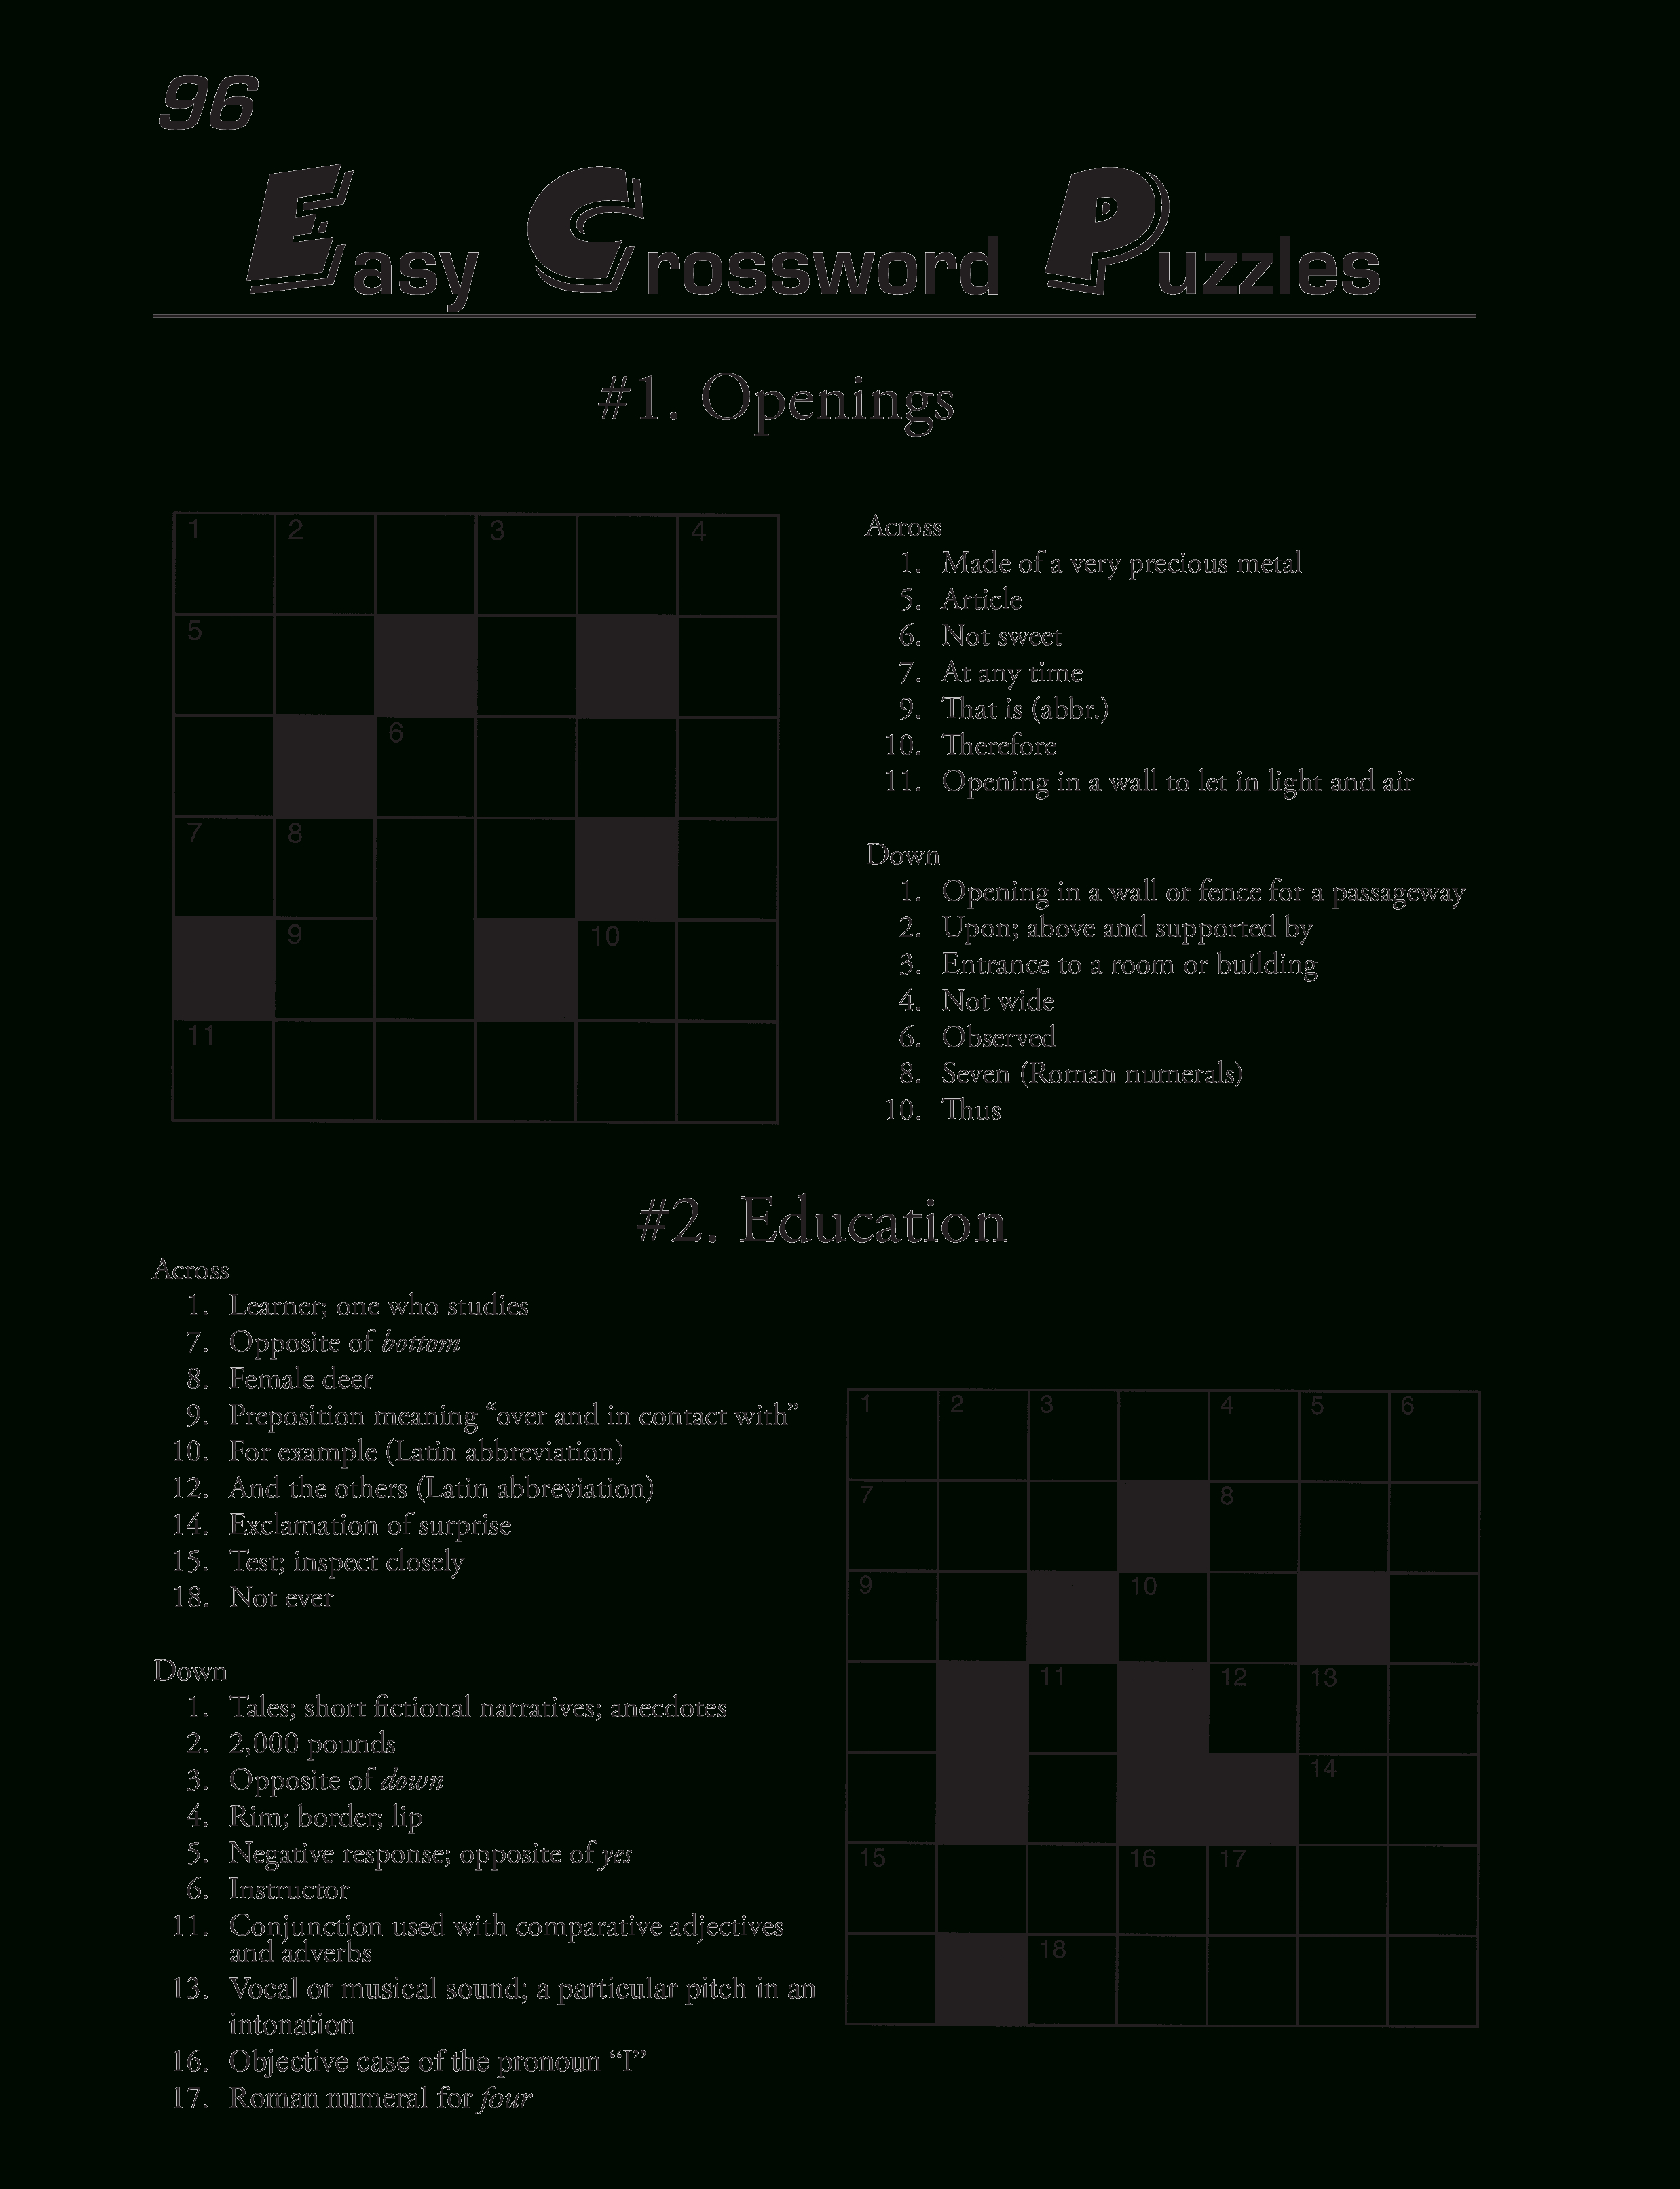 Printable Crossword Puzzles Template | Templates At - Download Printable Crossword Puzzles